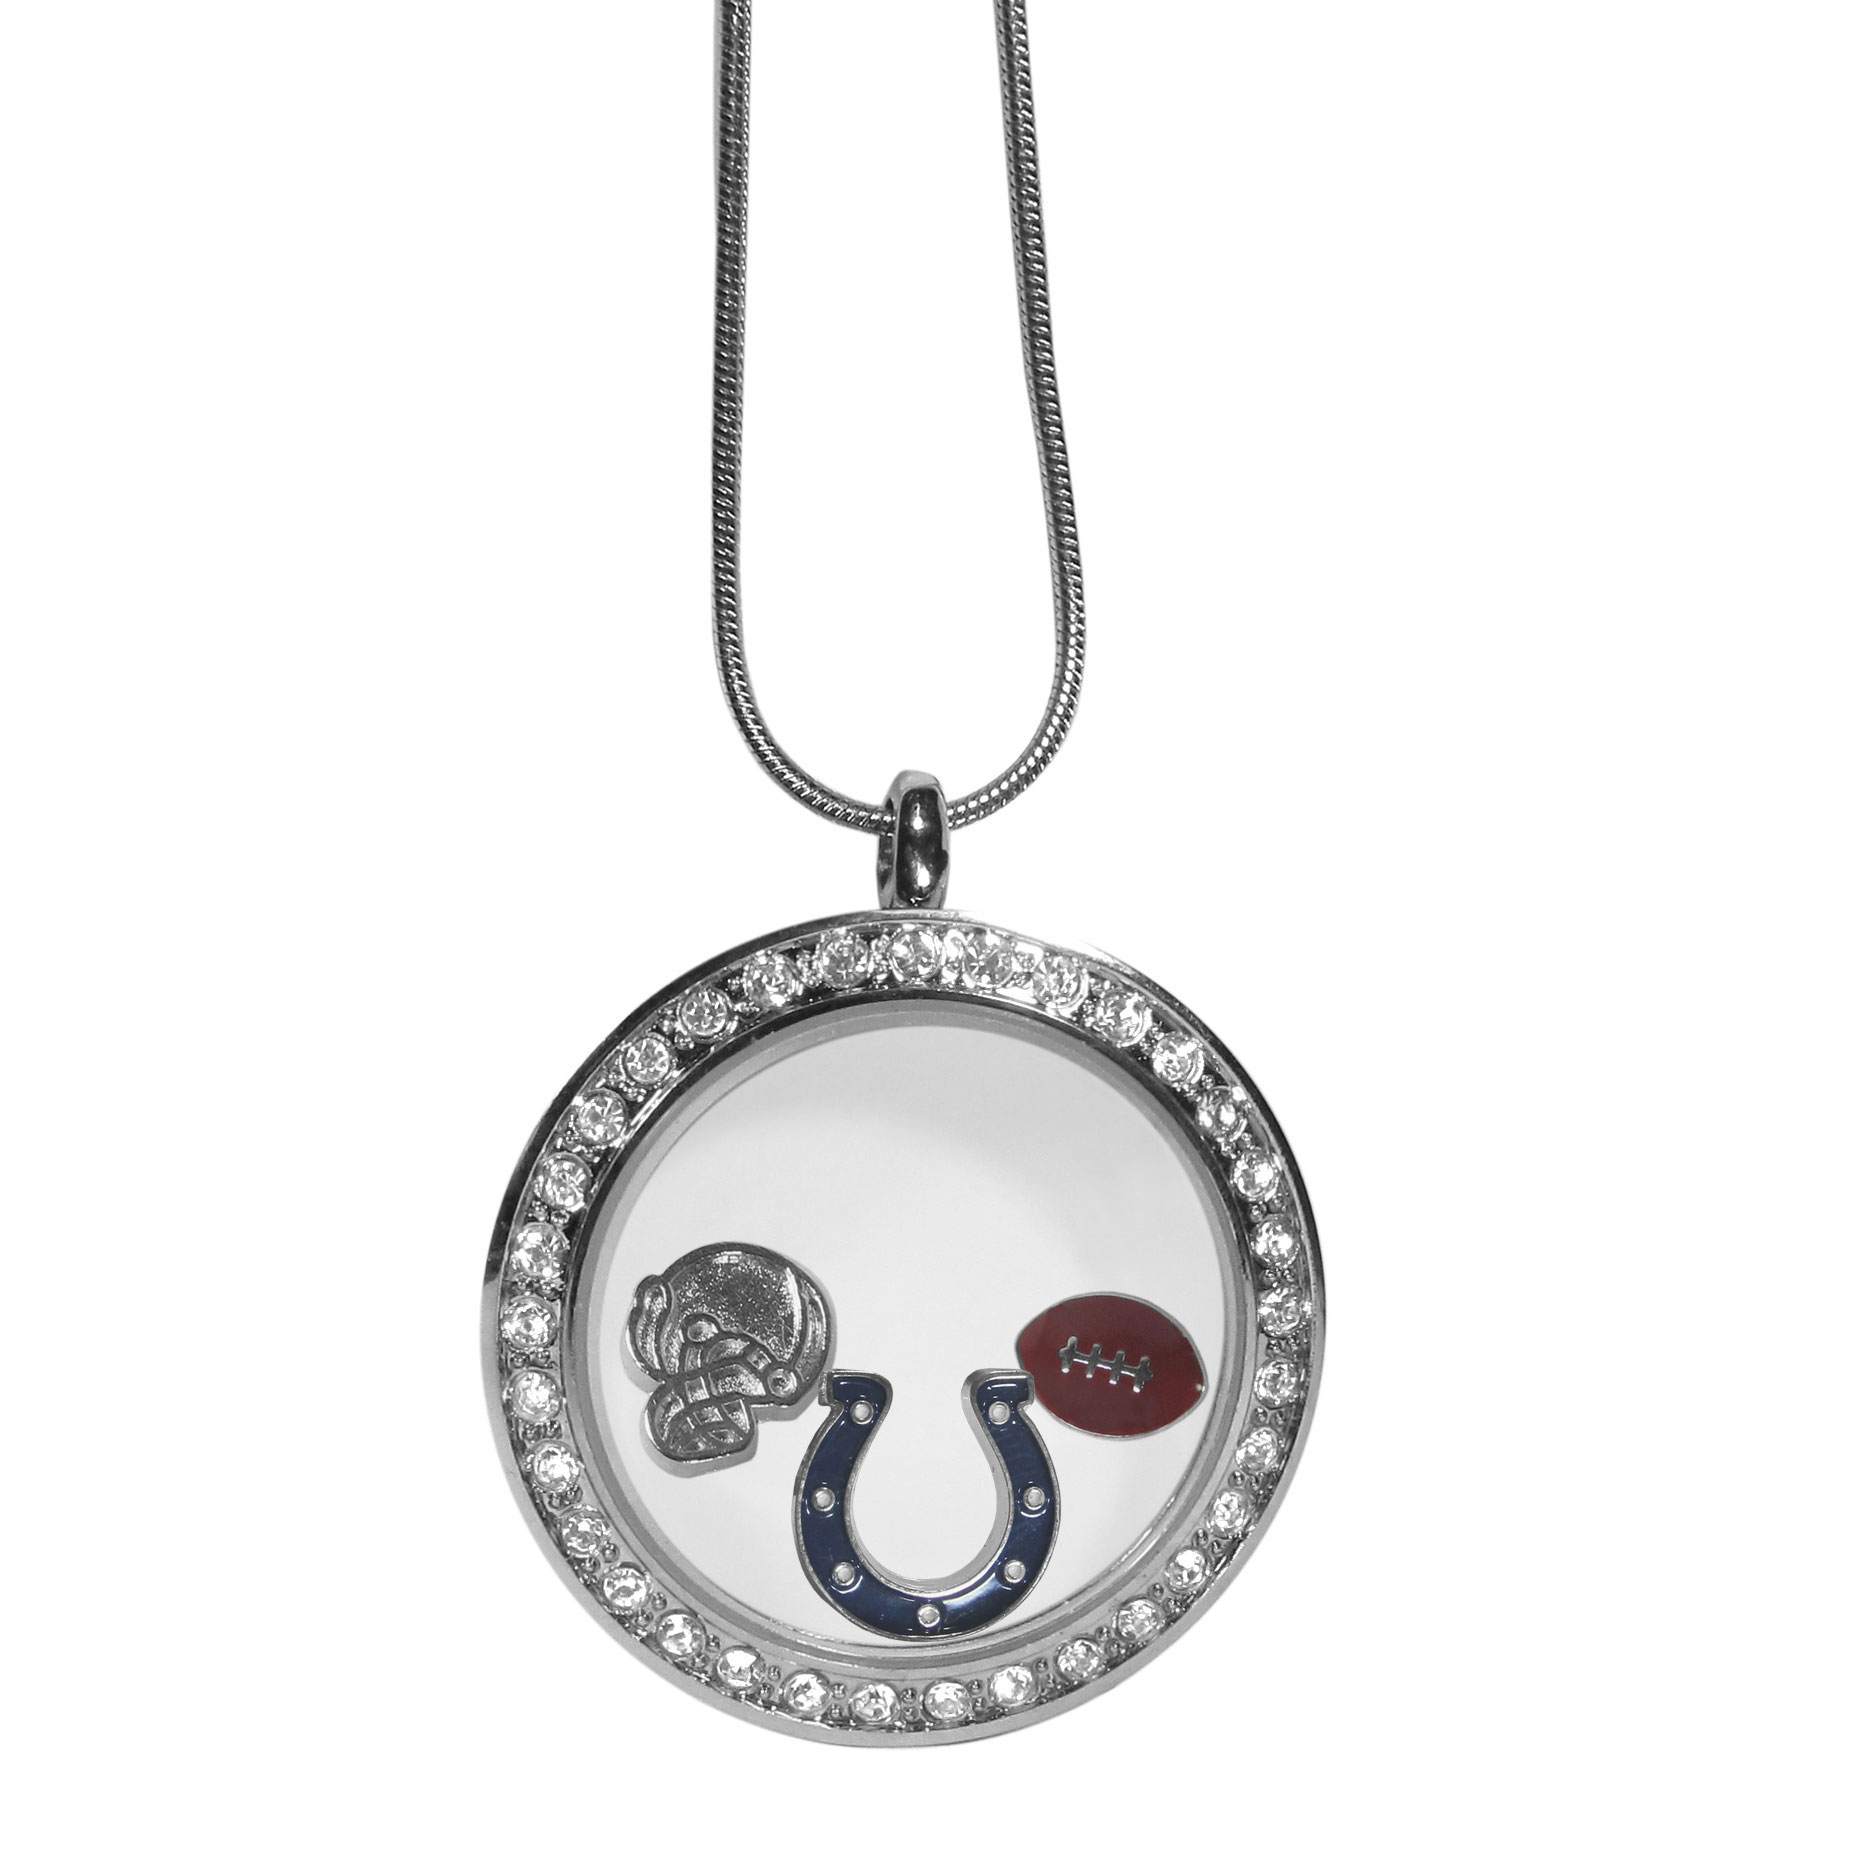 Indianapolis Colts Locket Necklace - We have taken the classic floating charm locket and combined with licensed sports charms to create a must have fan necklace. The necklace comes with 3 charms; 1 Indianapolis Colts charm, one football charm and one helmet charm. The charms float in a beautiful locket that has a strong magnetic closure with a rhinestone border. The locket comes on an 18 inch snake chain with 2 inch extender.